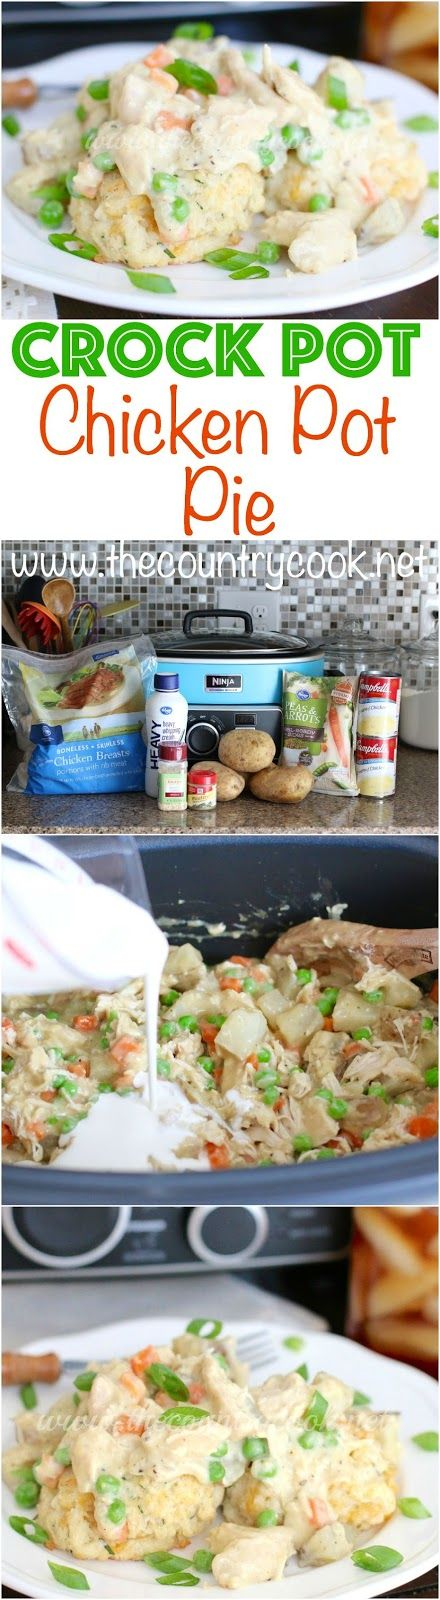 Crock Pot Chicken Pot Pie recipe from The Country Cook. A thick and creamy filling with chunks of chicken, potatoes and other veggies all served over soft and tender biscuits. My family went crazy for this and it also makes for good leftovers!